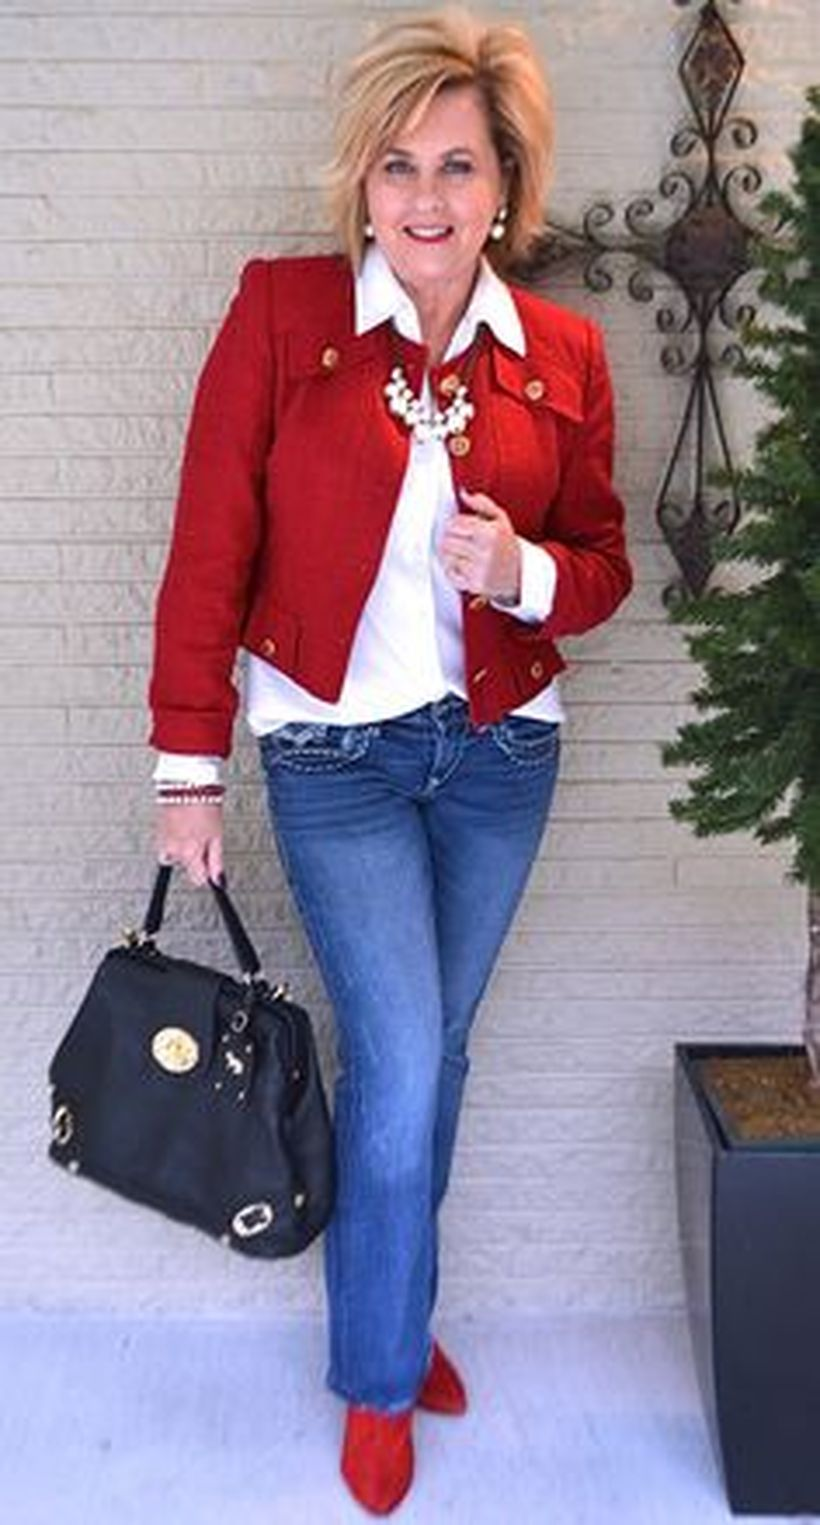 Fashionable over 50 fall outfits ideas 90 - Fashion Best